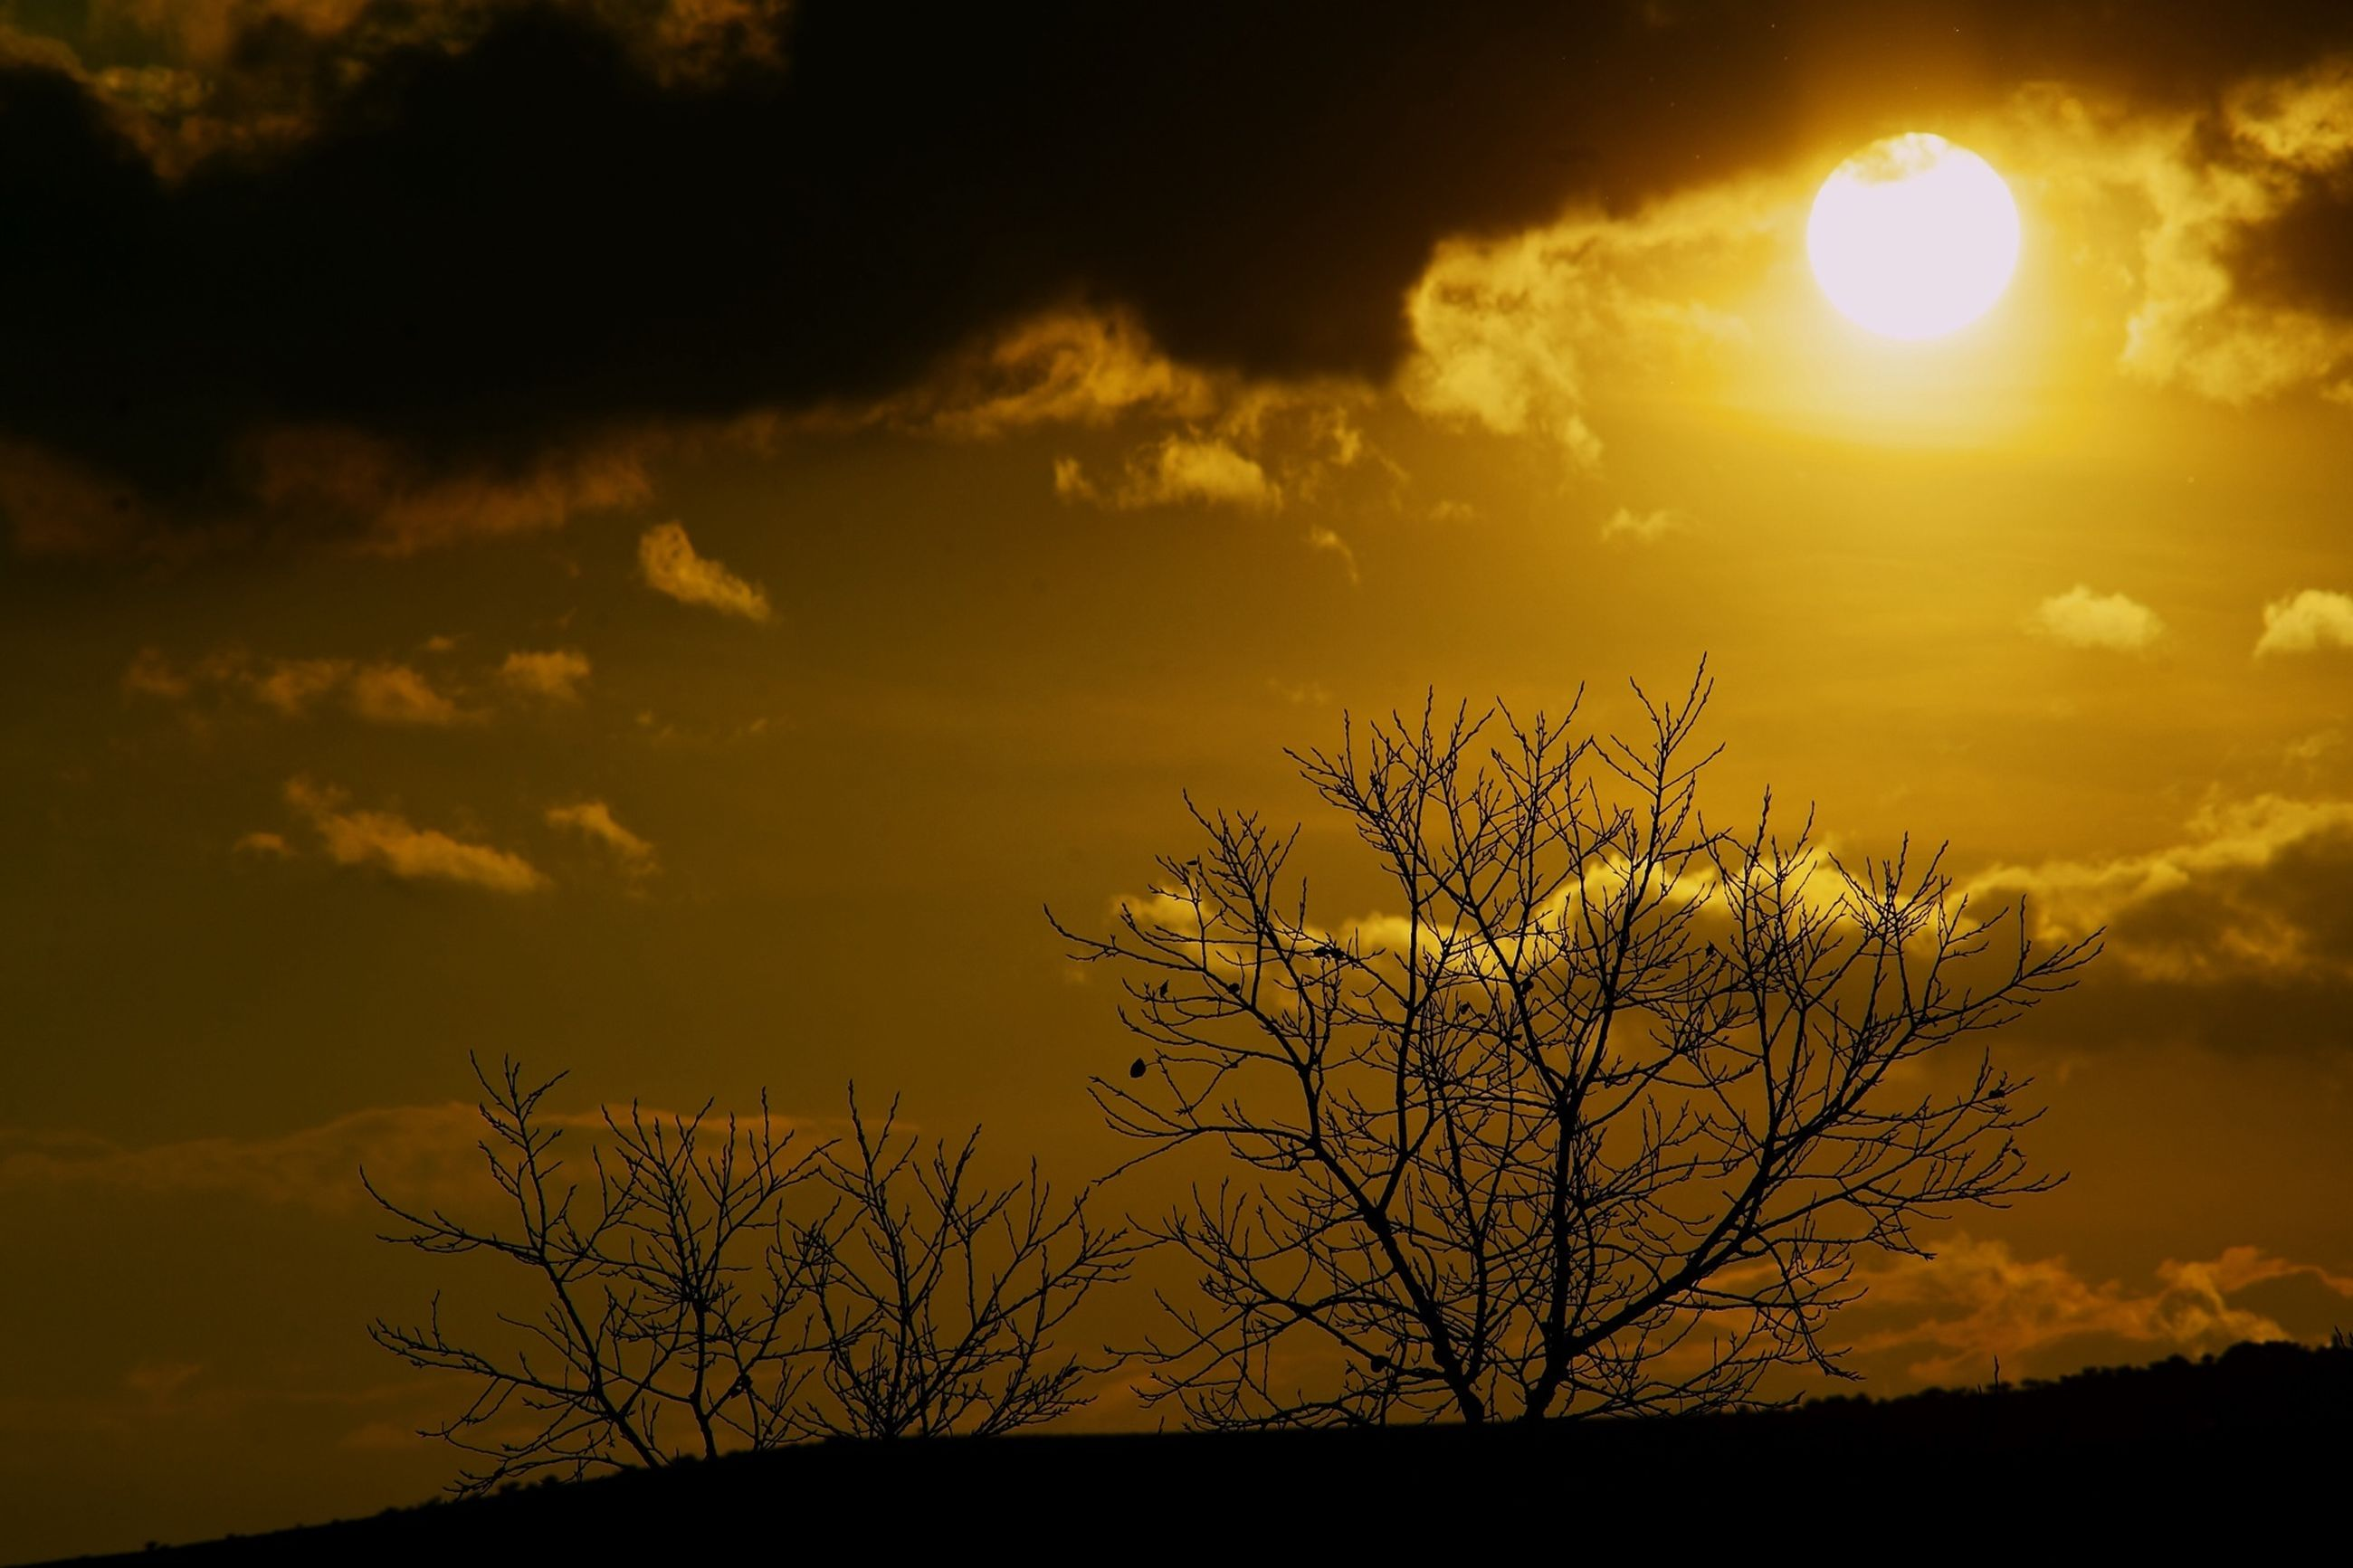 sunset, silhouette, sky, sun, tranquility, beauty in nature, scenics, bare tree, tranquil scene, tree, orange color, low angle view, branch, nature, cloud - sky, idyllic, dramatic sky, sunlight, back lit, outdoors